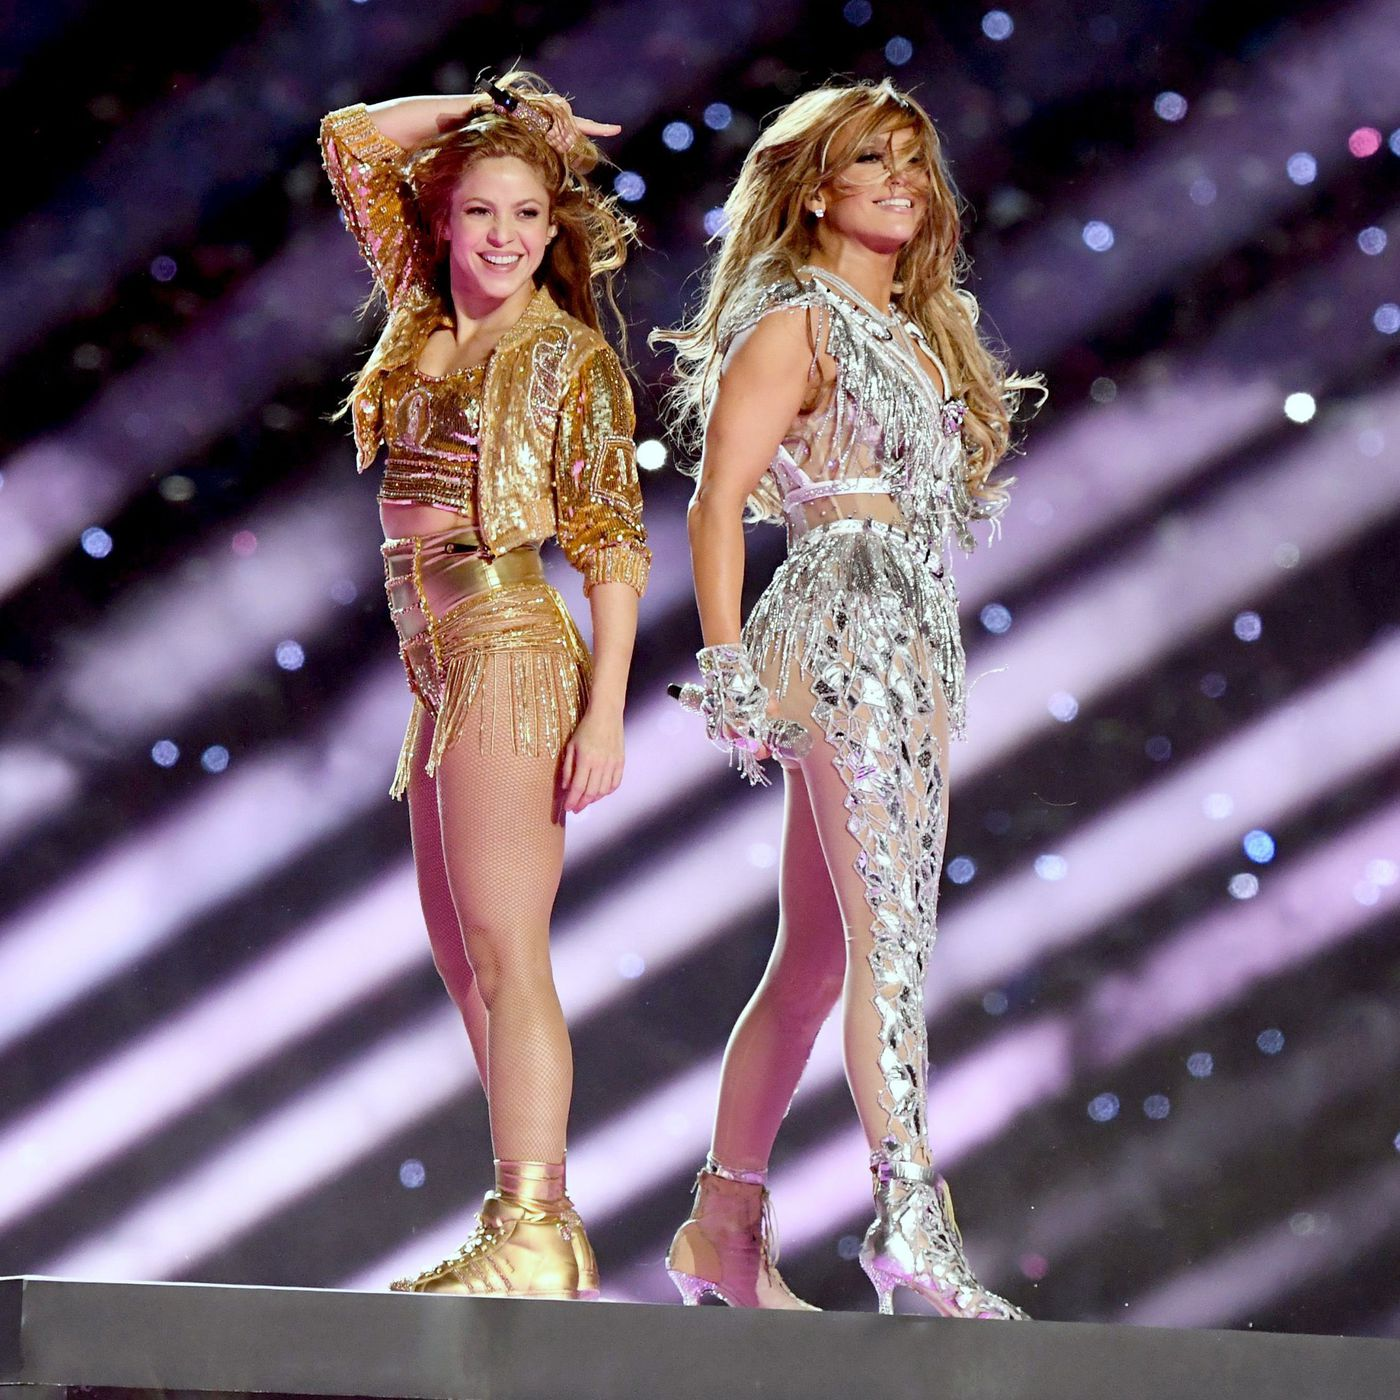 Super Bowl 2020 Full Halftime Show J Lo And Shakira Dazzle Sparkle Shine Vox